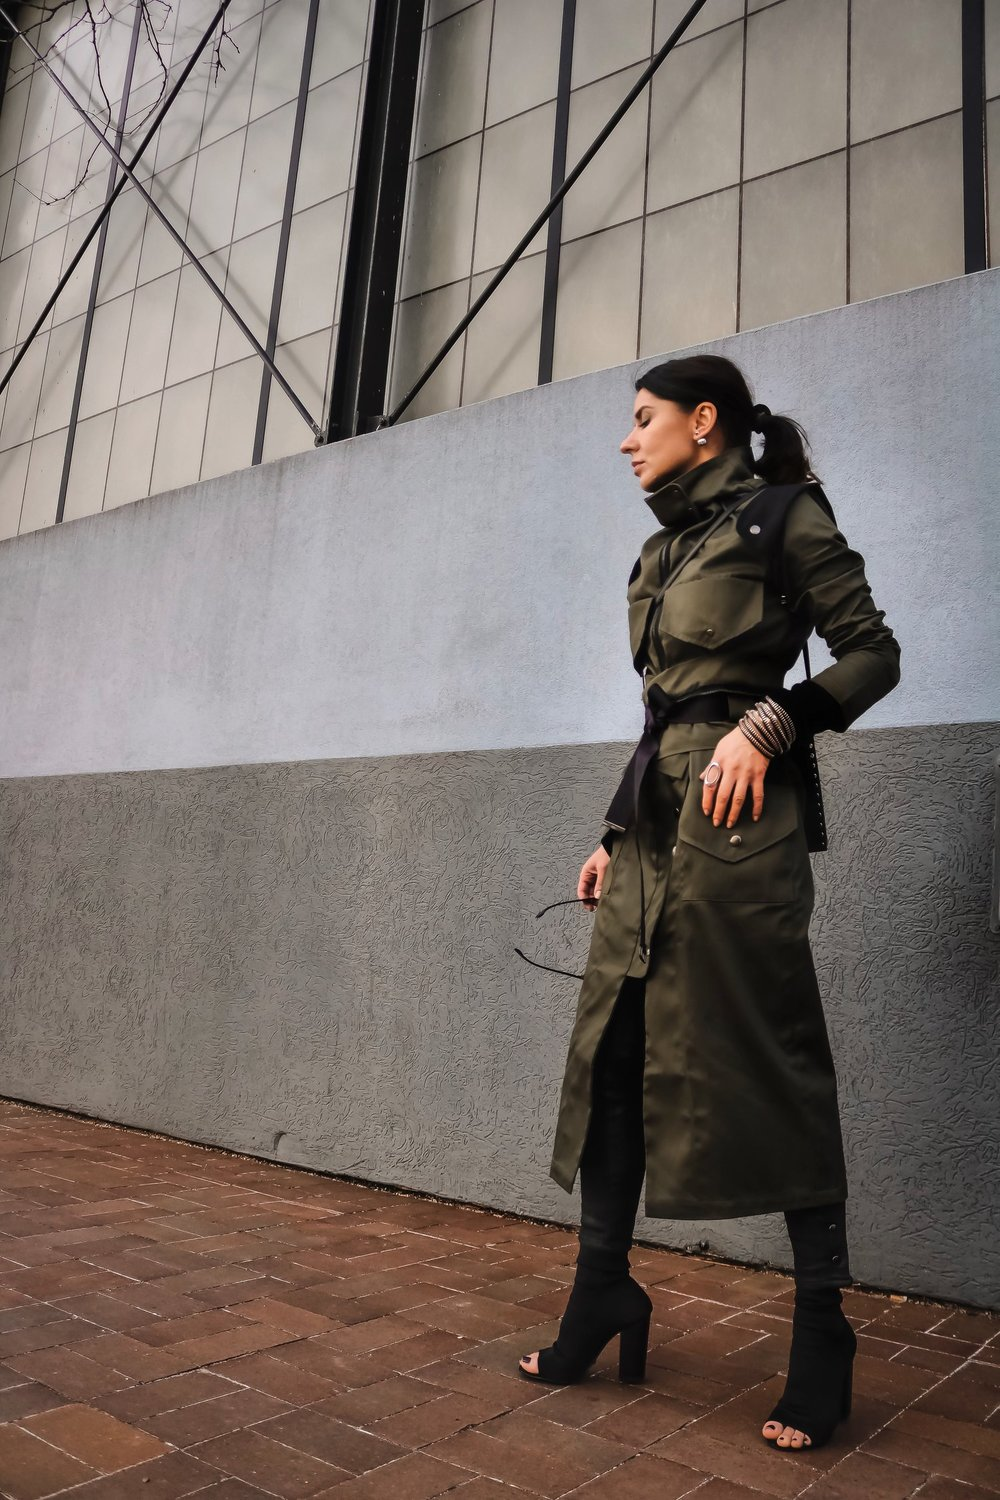 Isabel-Alexander-Clothia-trenchcoat-doublebreasted-convertible-trenchcoat-street-style